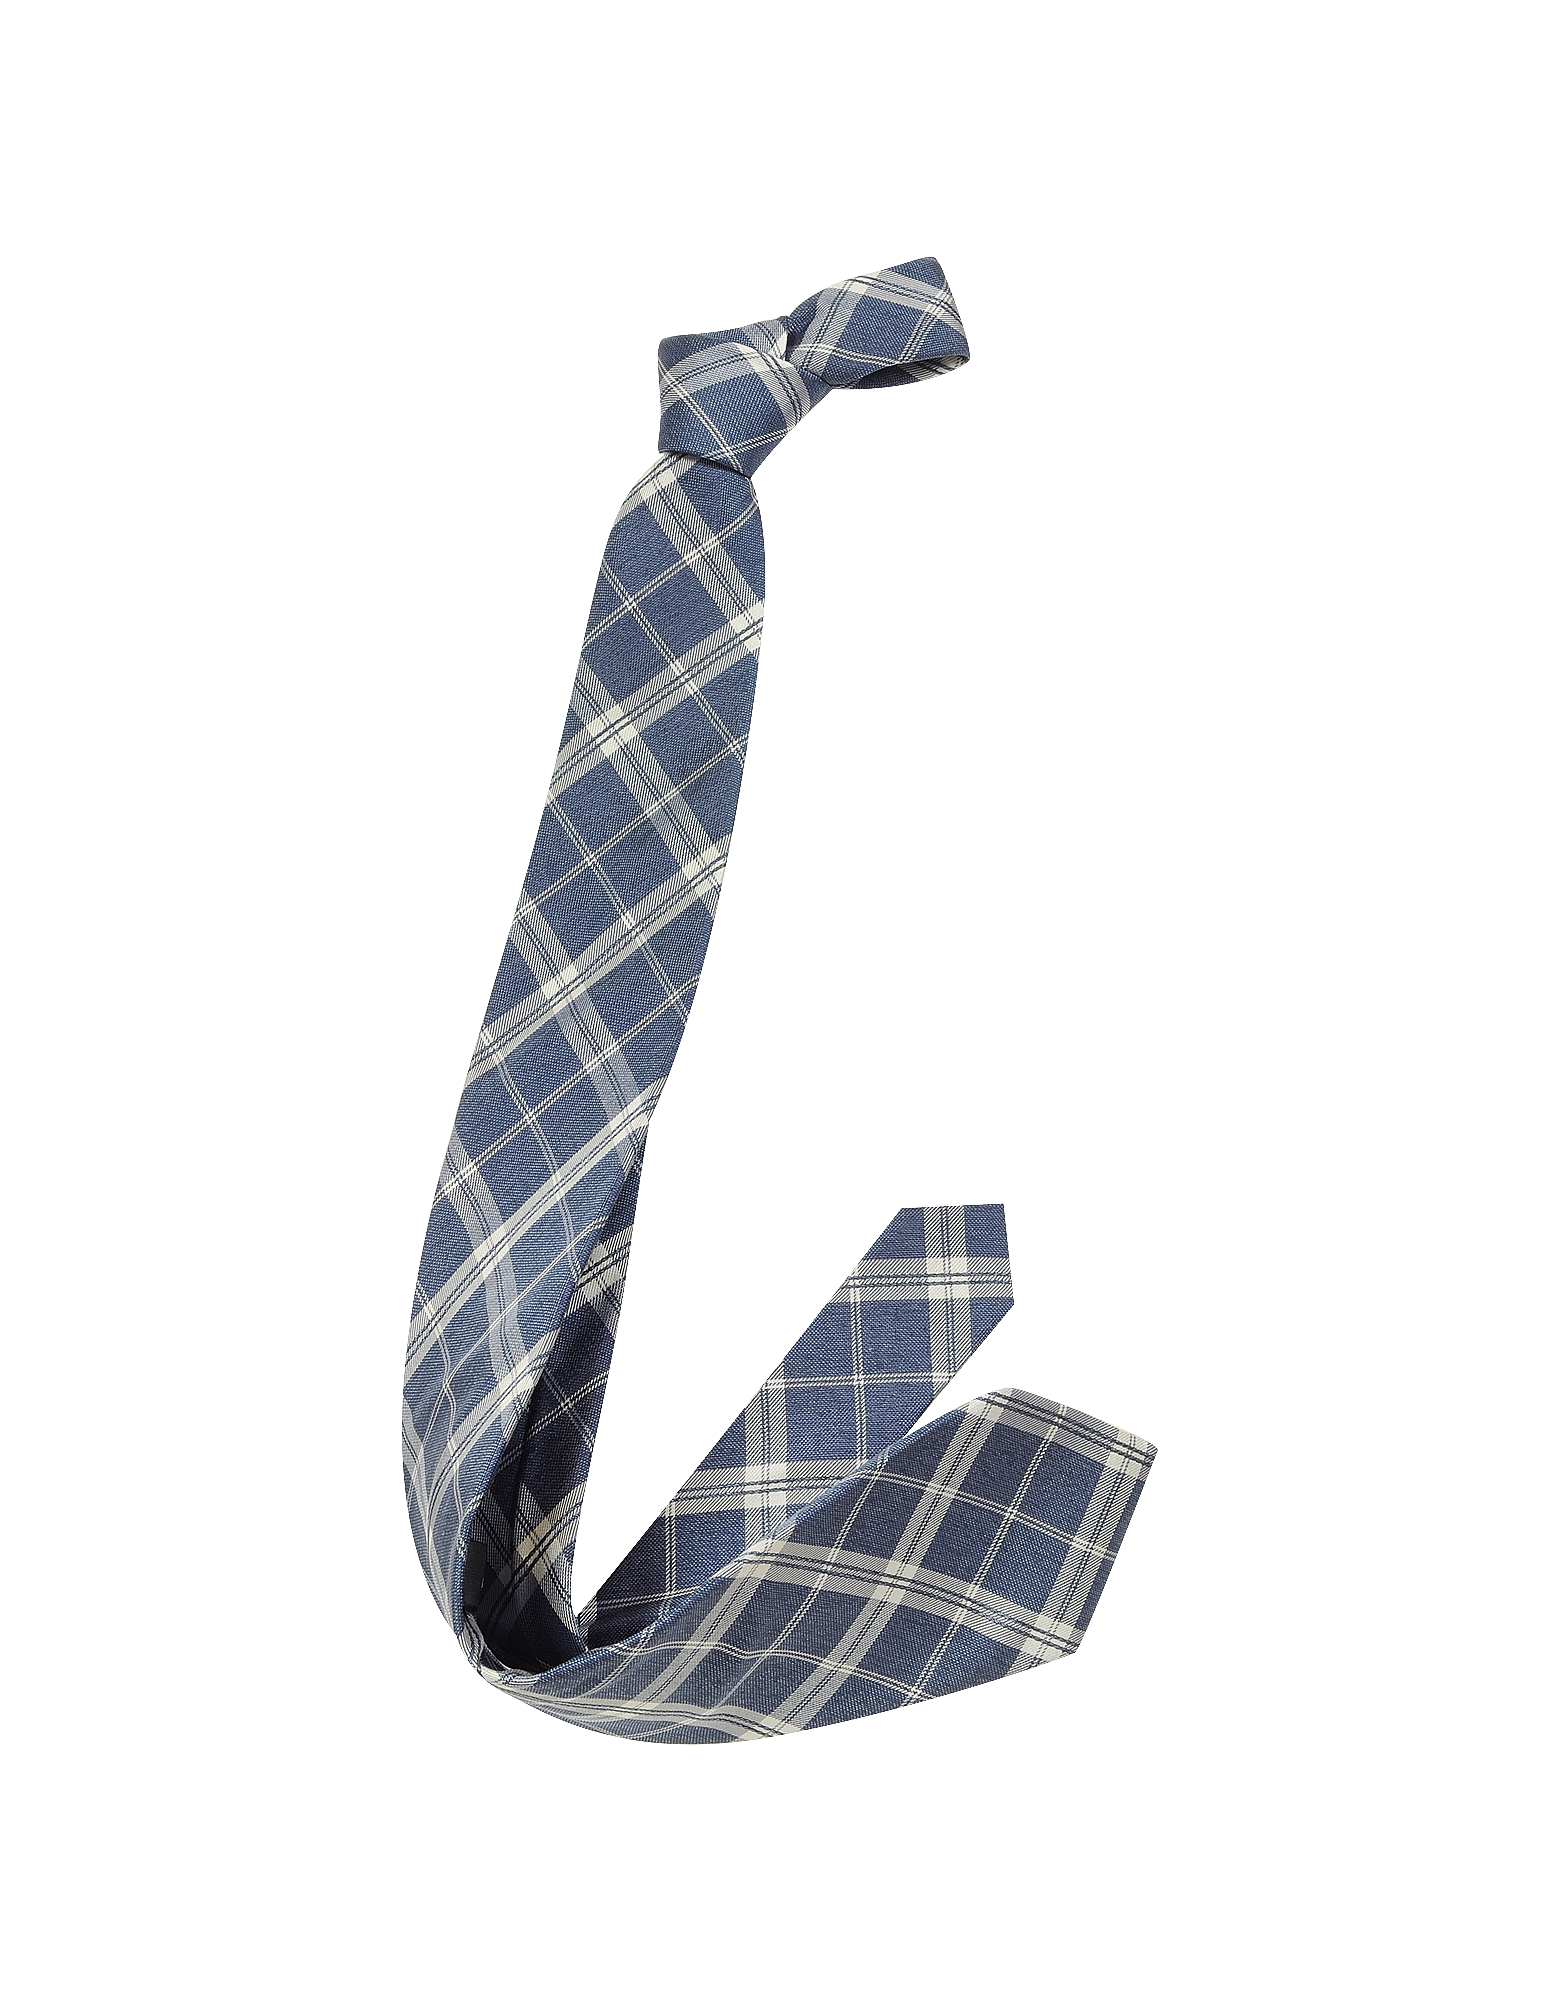 Navy Blue & White Plaid Print Woven Silk Tie от Forzieri.com INT